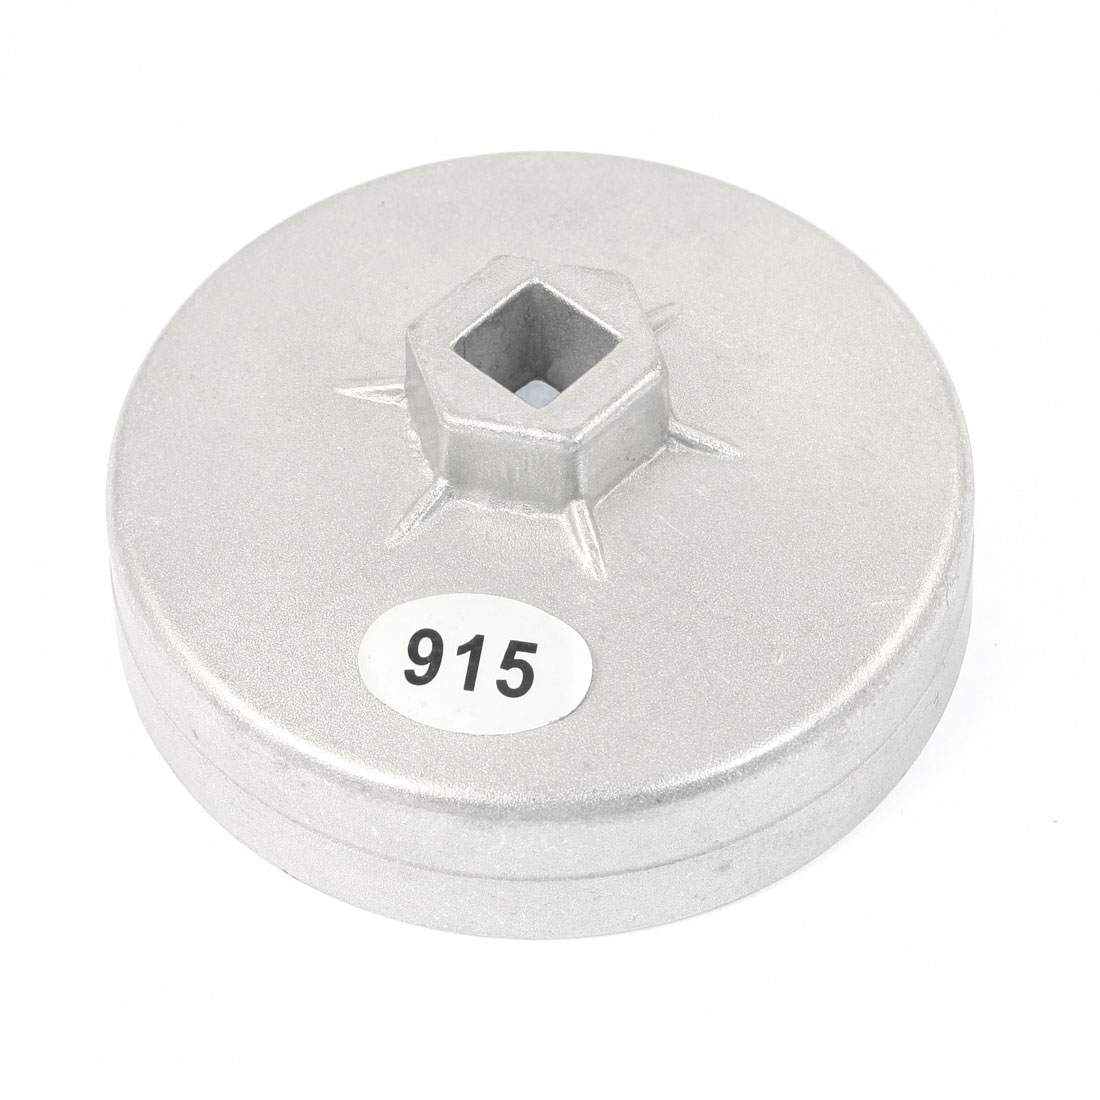 92mm 15 Flutes Oil Filter Cartridge Cap Wrench Tool Socket Remover for Car